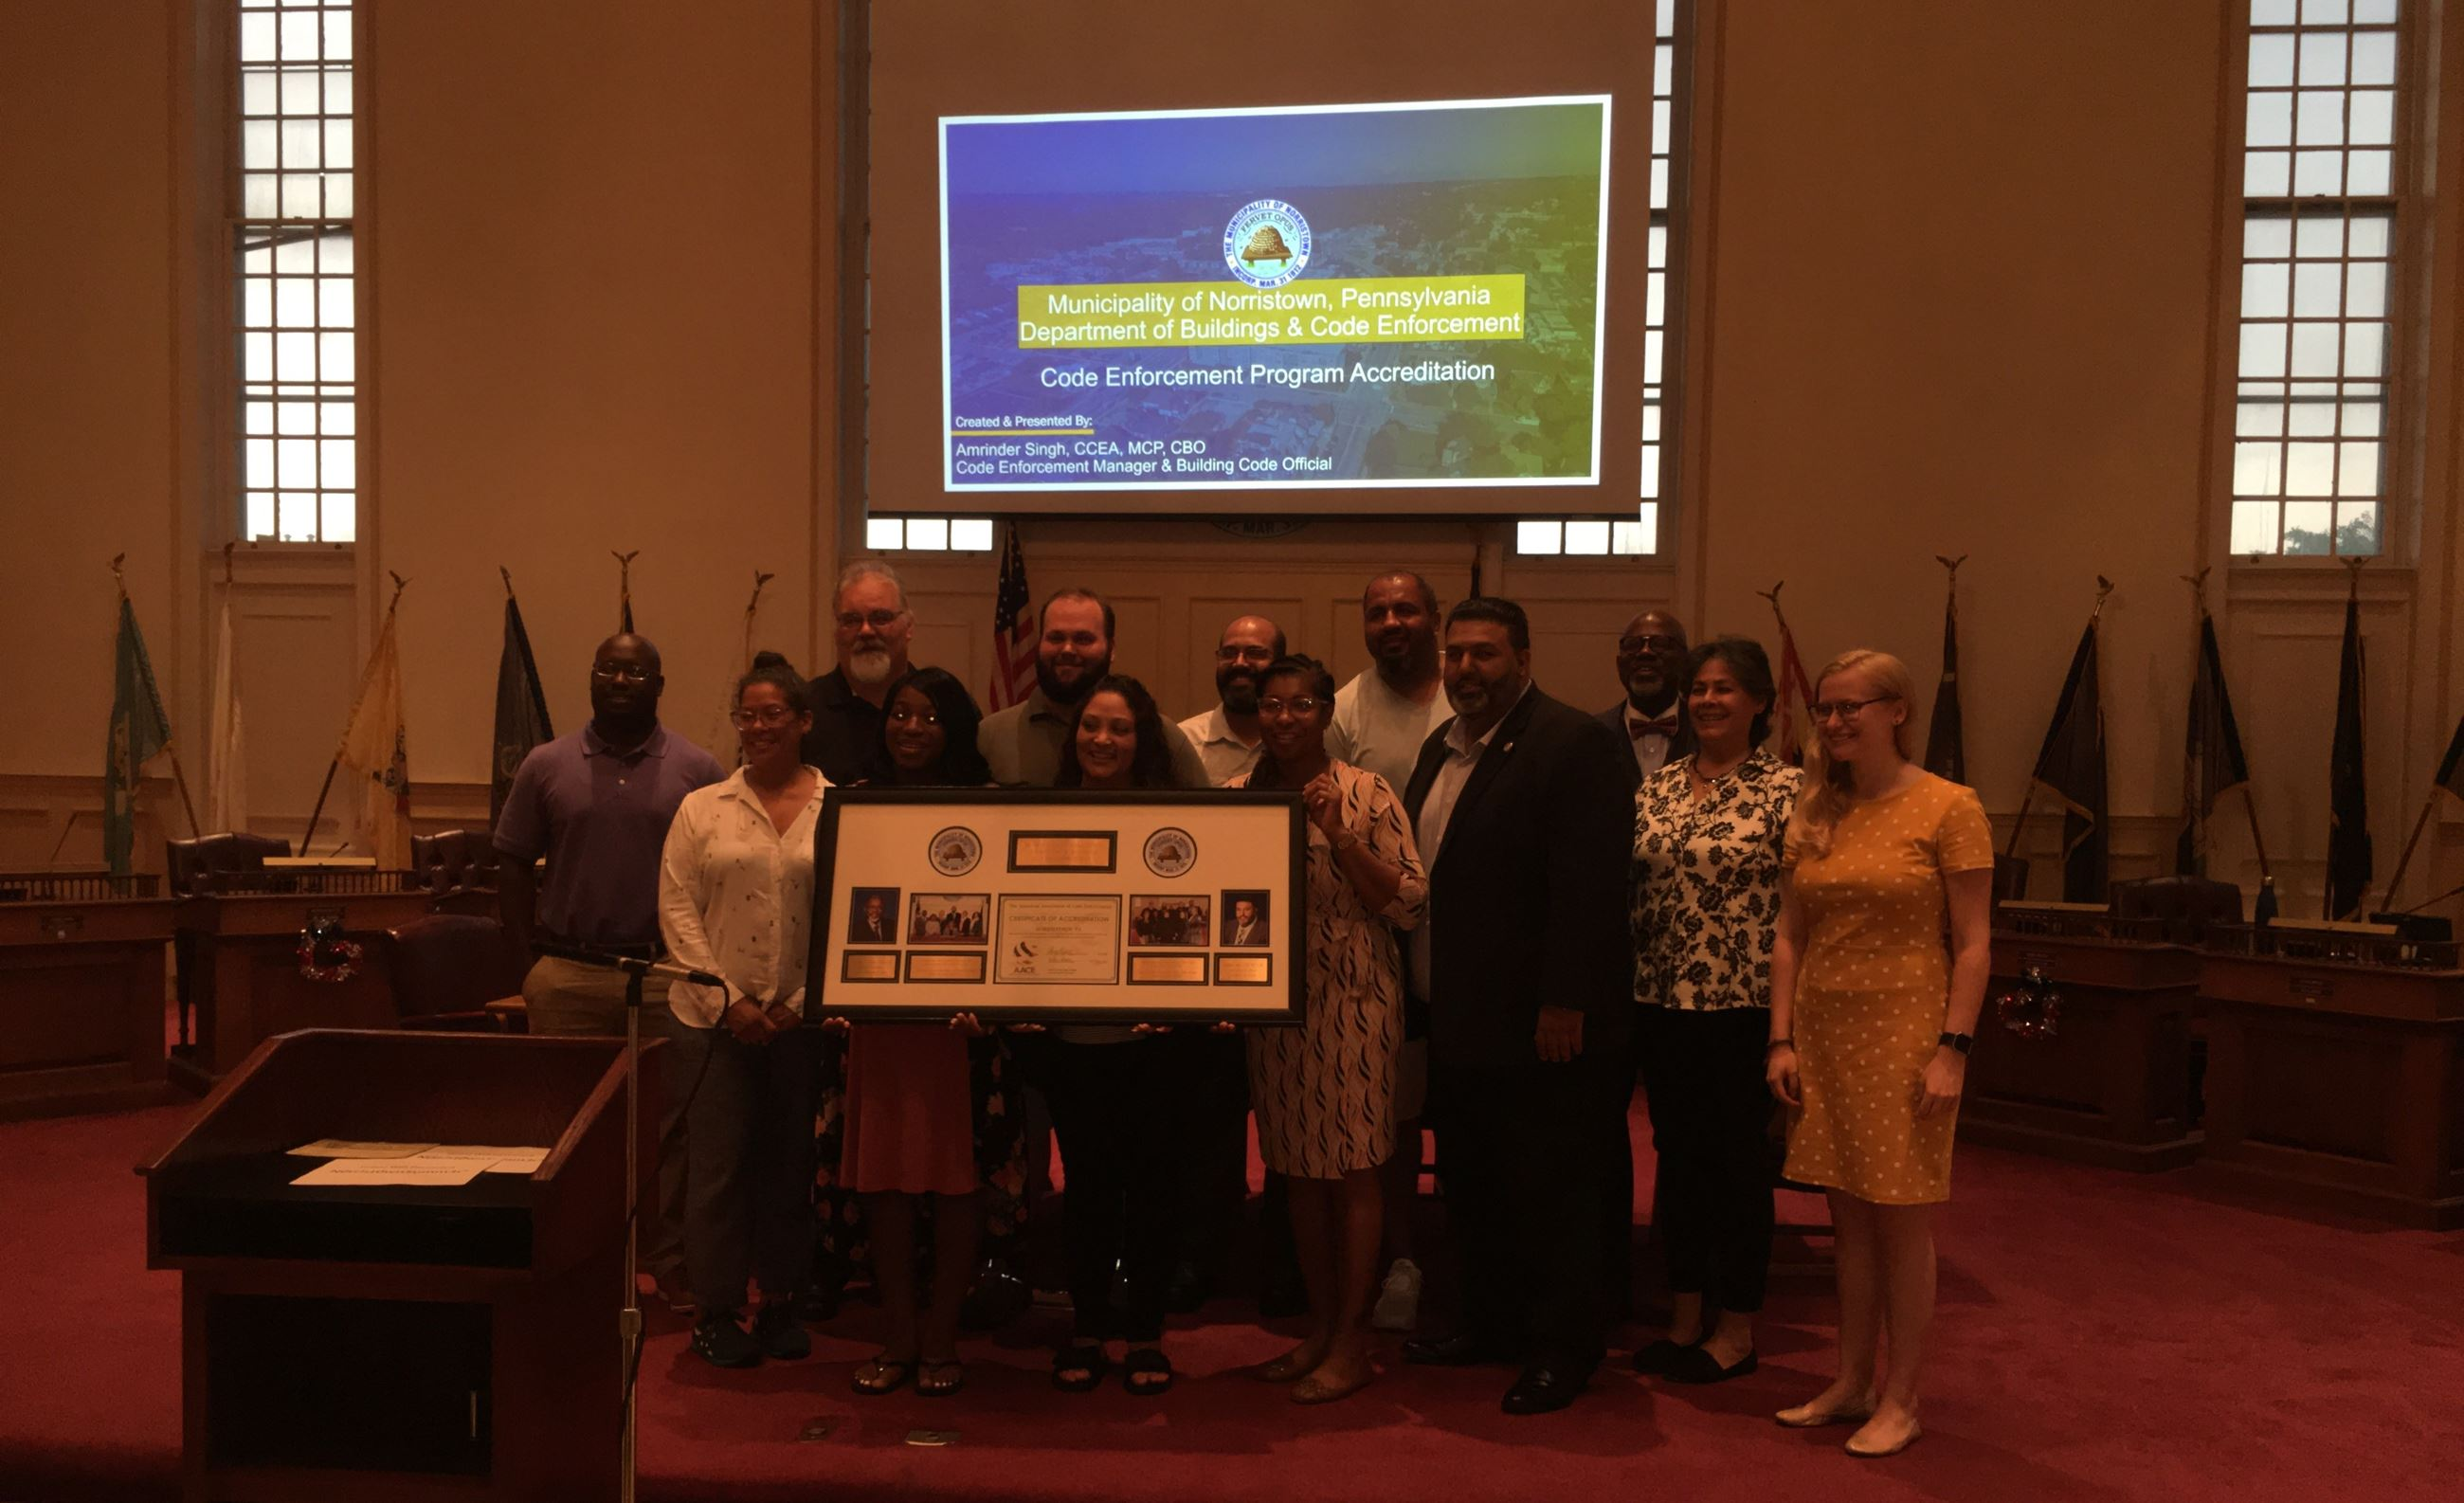 Accreditation Certificate Presentation on July 2, 2019 Council Meeting